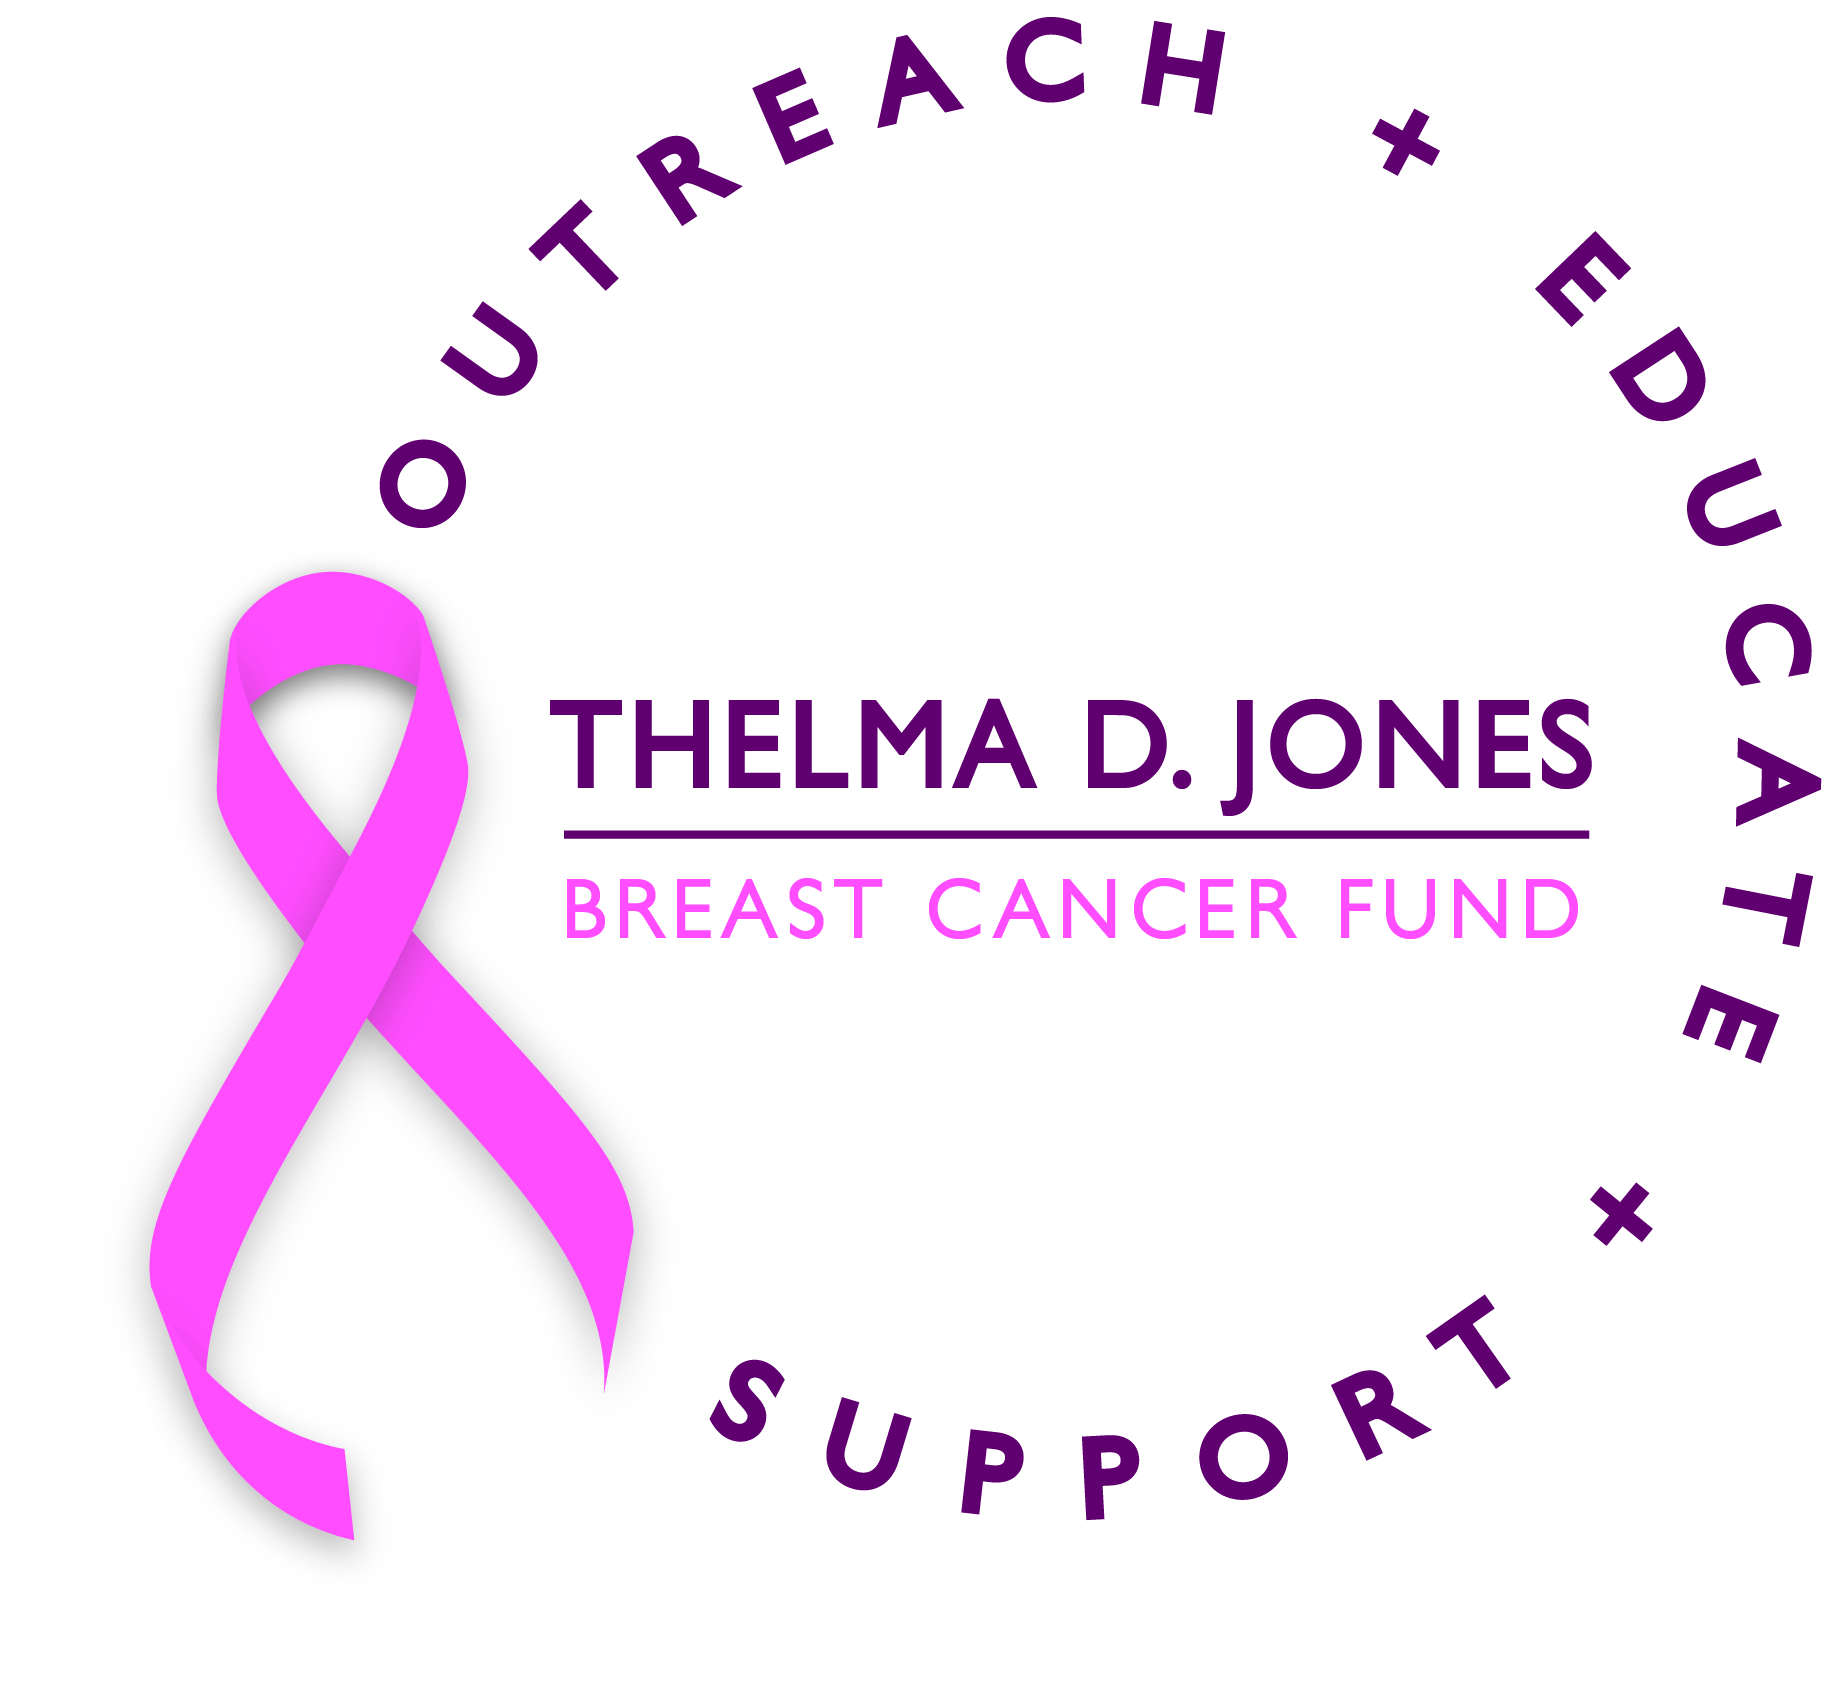 Thelma D. Jones Breast Cancer Fund Logo